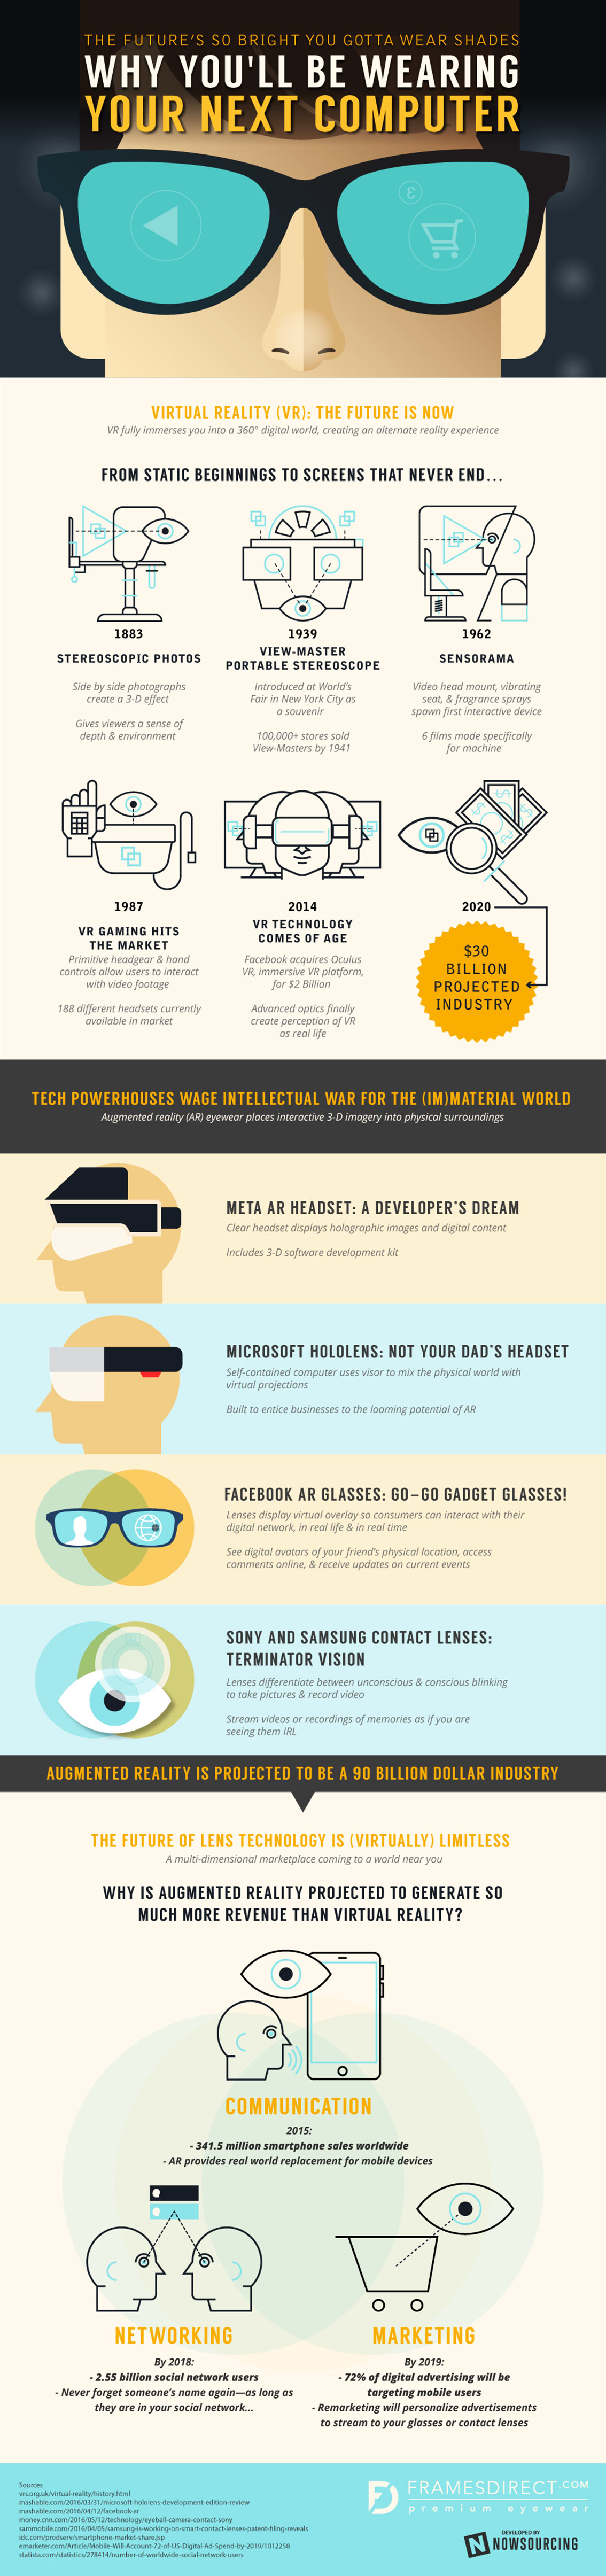 Virtual Reality Wearing Your Next Computer Gadget Infographic